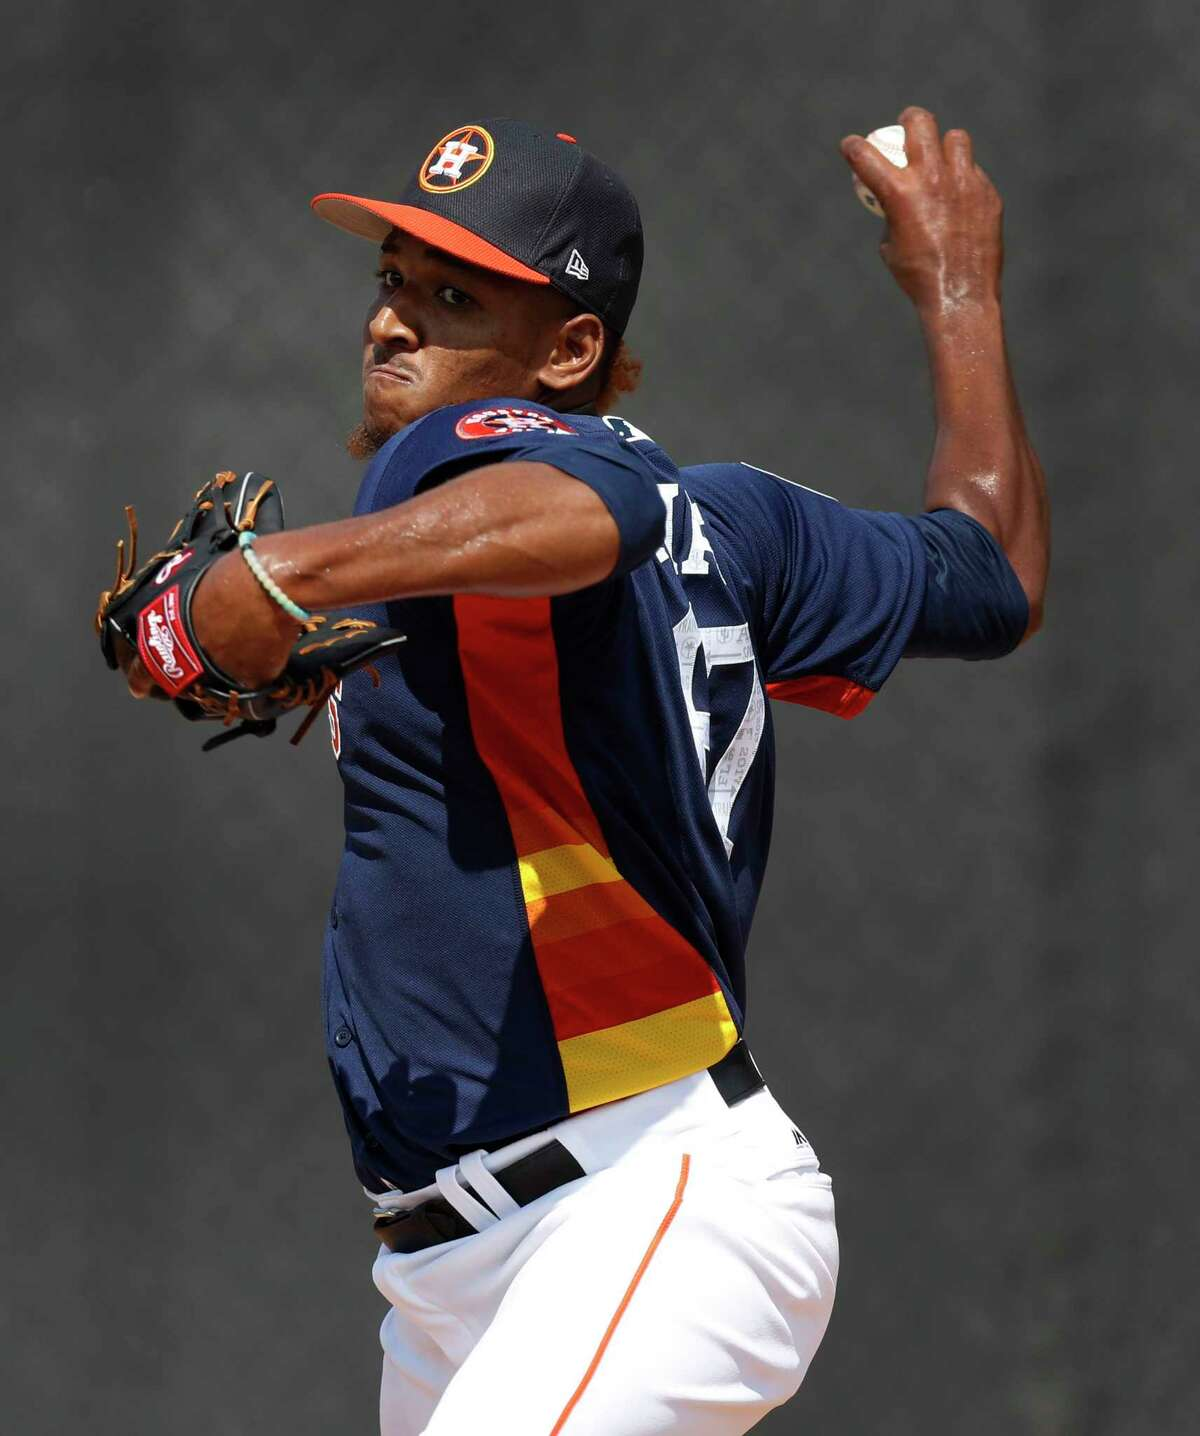 Houston Astros relief pitcher Edison Frias (67) pitches as the Astros pitchers and catchers held their first workout of spring training at The Ballpark of the Palm Beaches, in West Palm Beach, Florida, Tuesday, February 14, 2017.